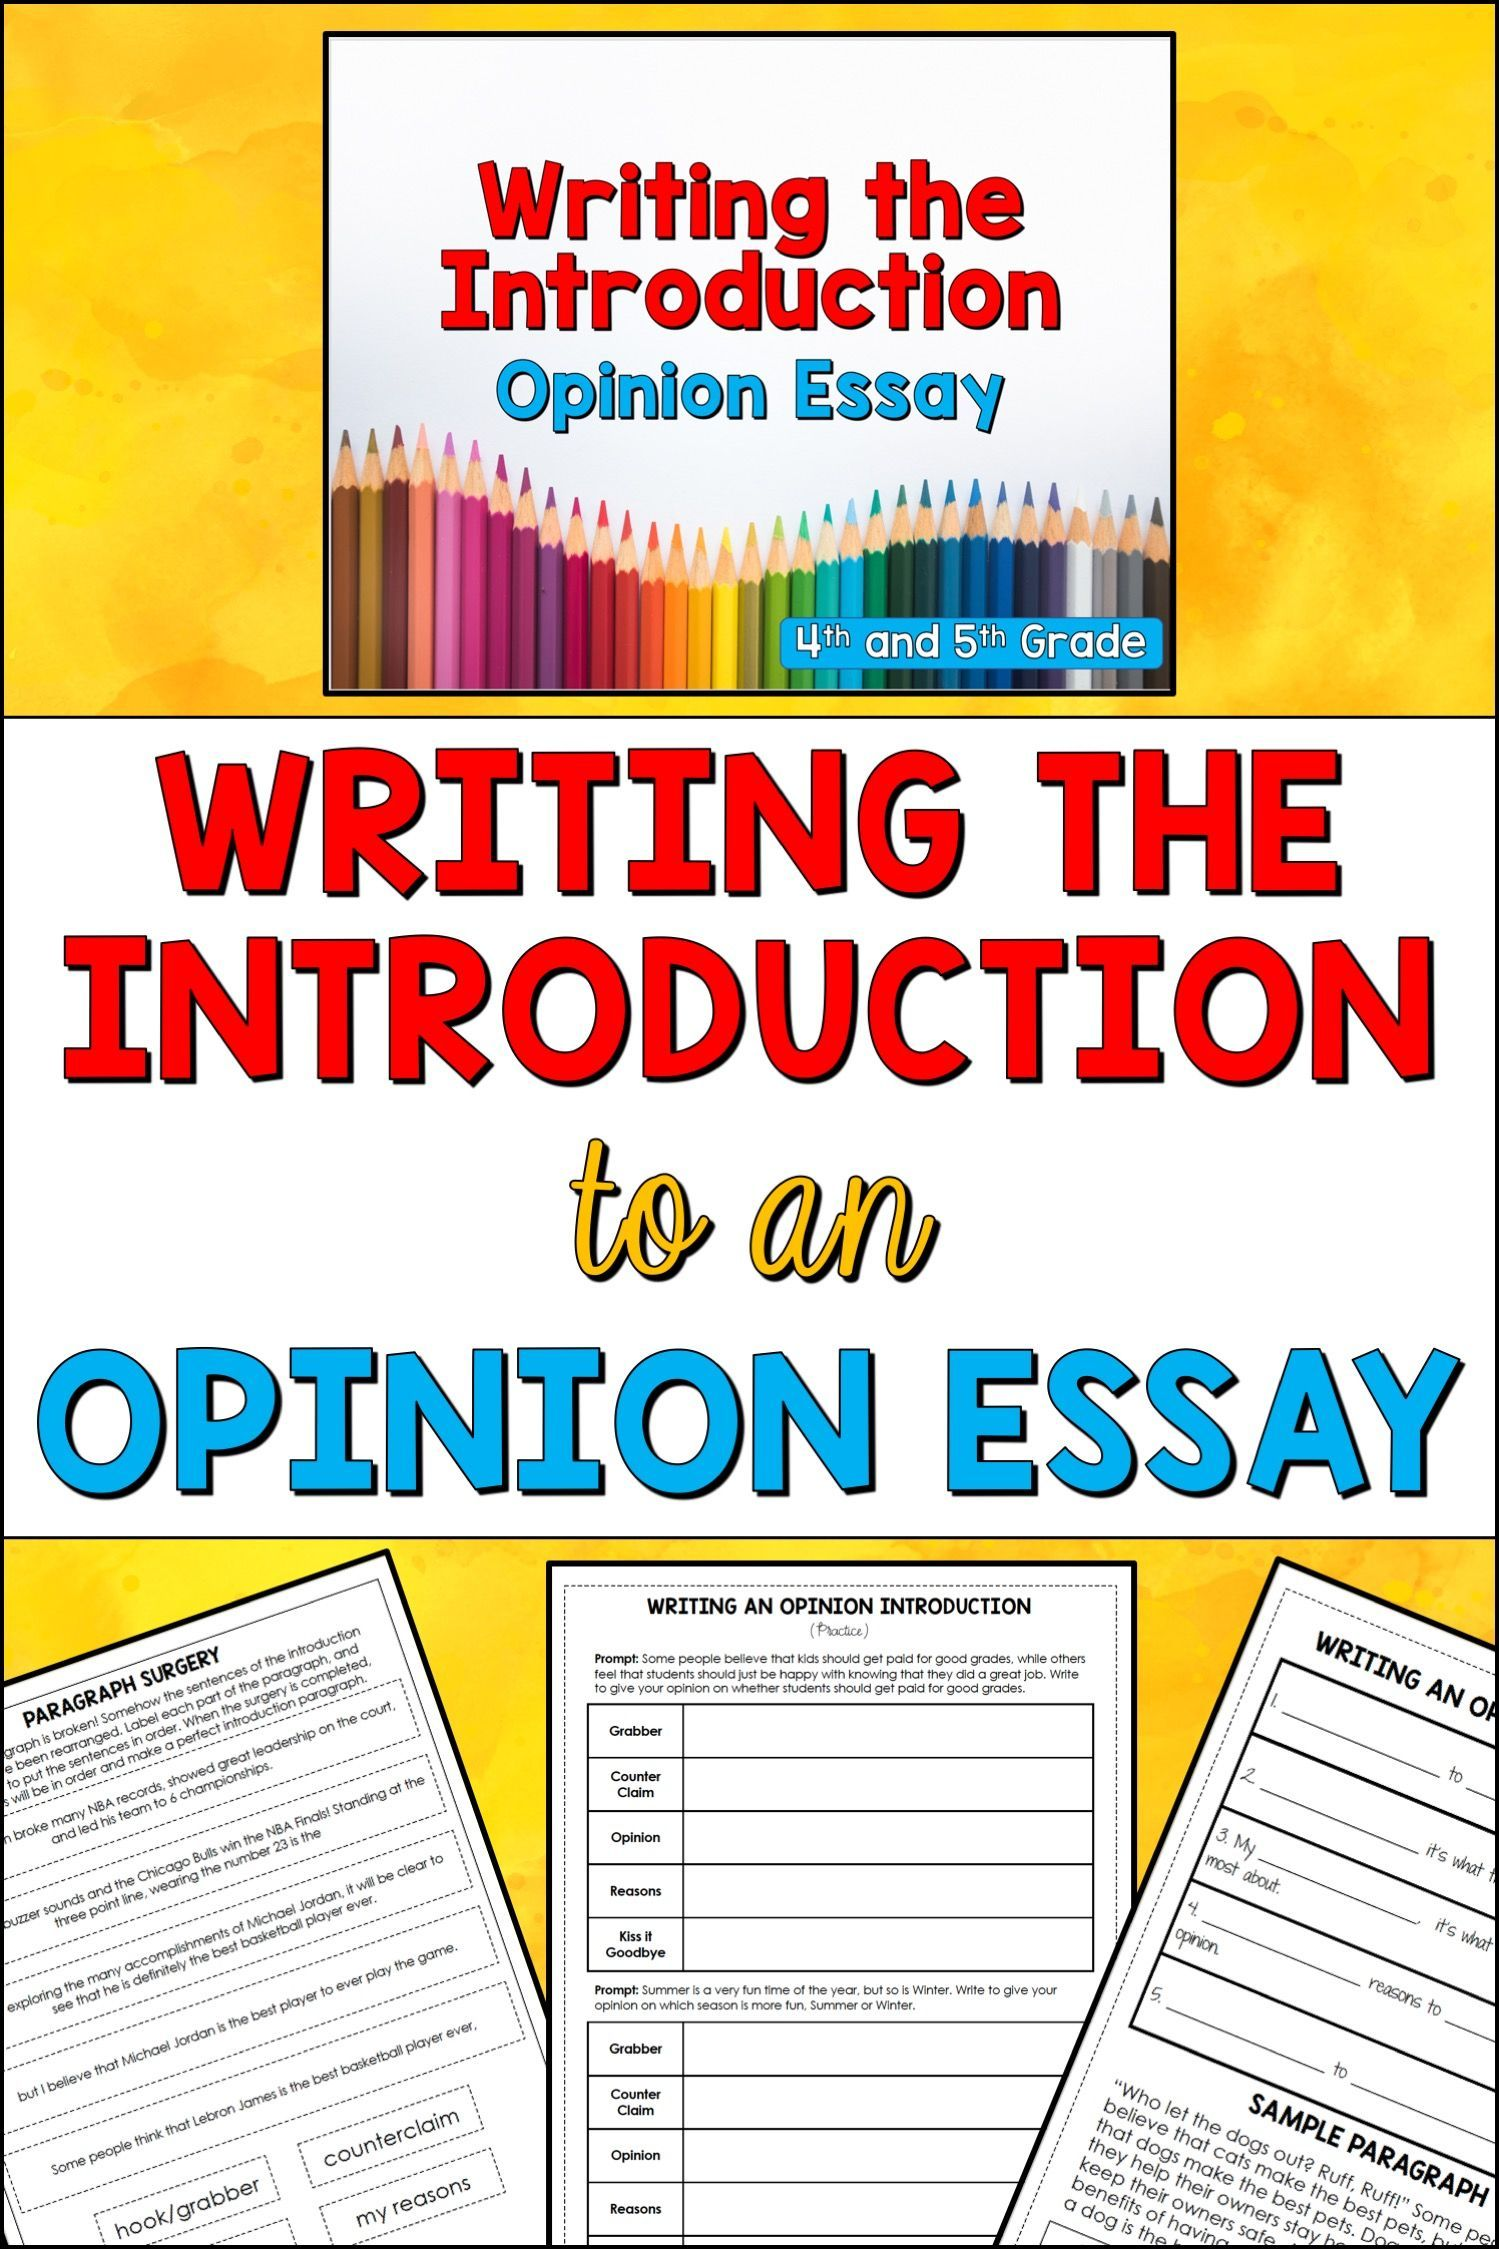 This Opinion Writing Powerpoint Will Help Your 4th And 5th